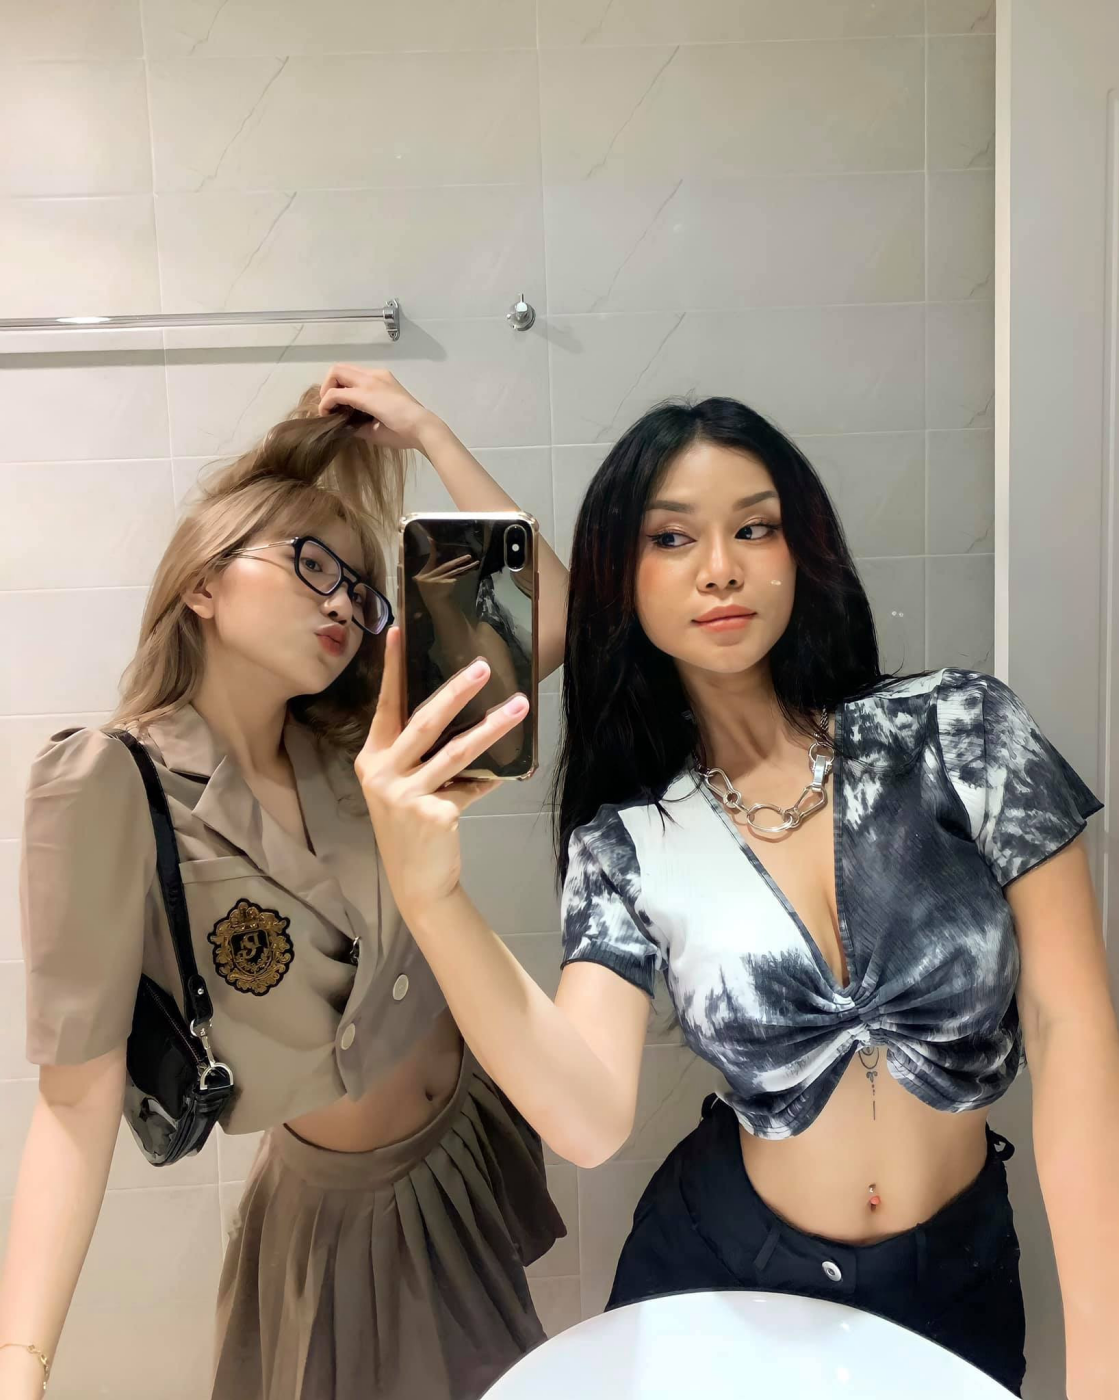 Thanh Huynh. The art of taking selfies in front of a mirror